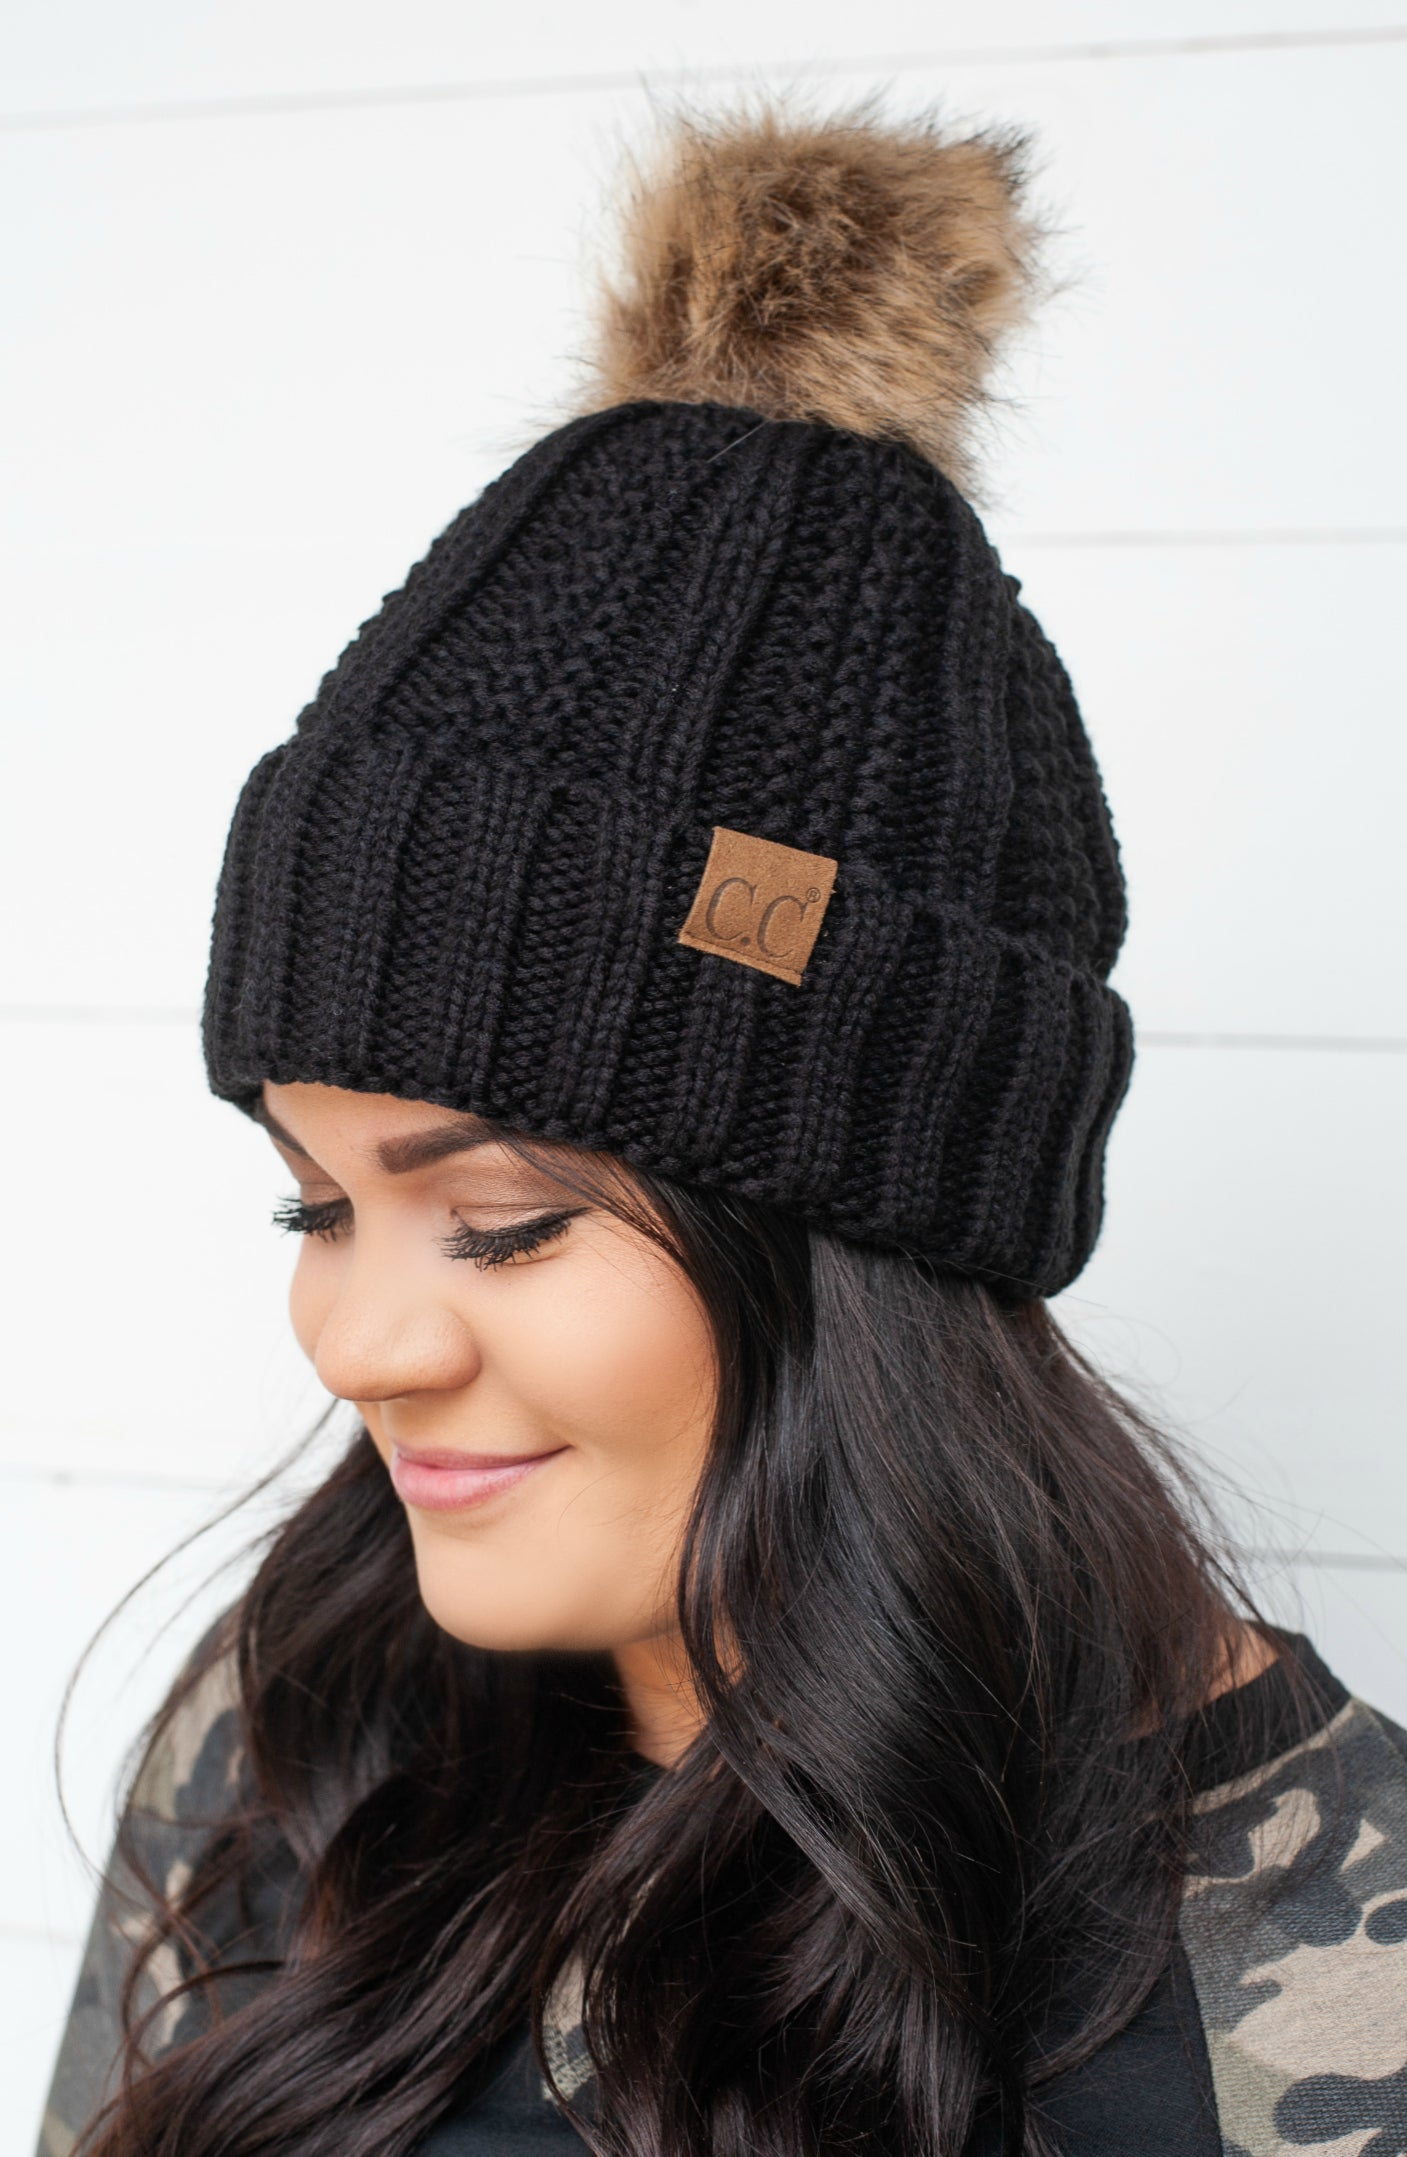 Cc Fuzzy Lining Knitted Beanie - 2 Colors